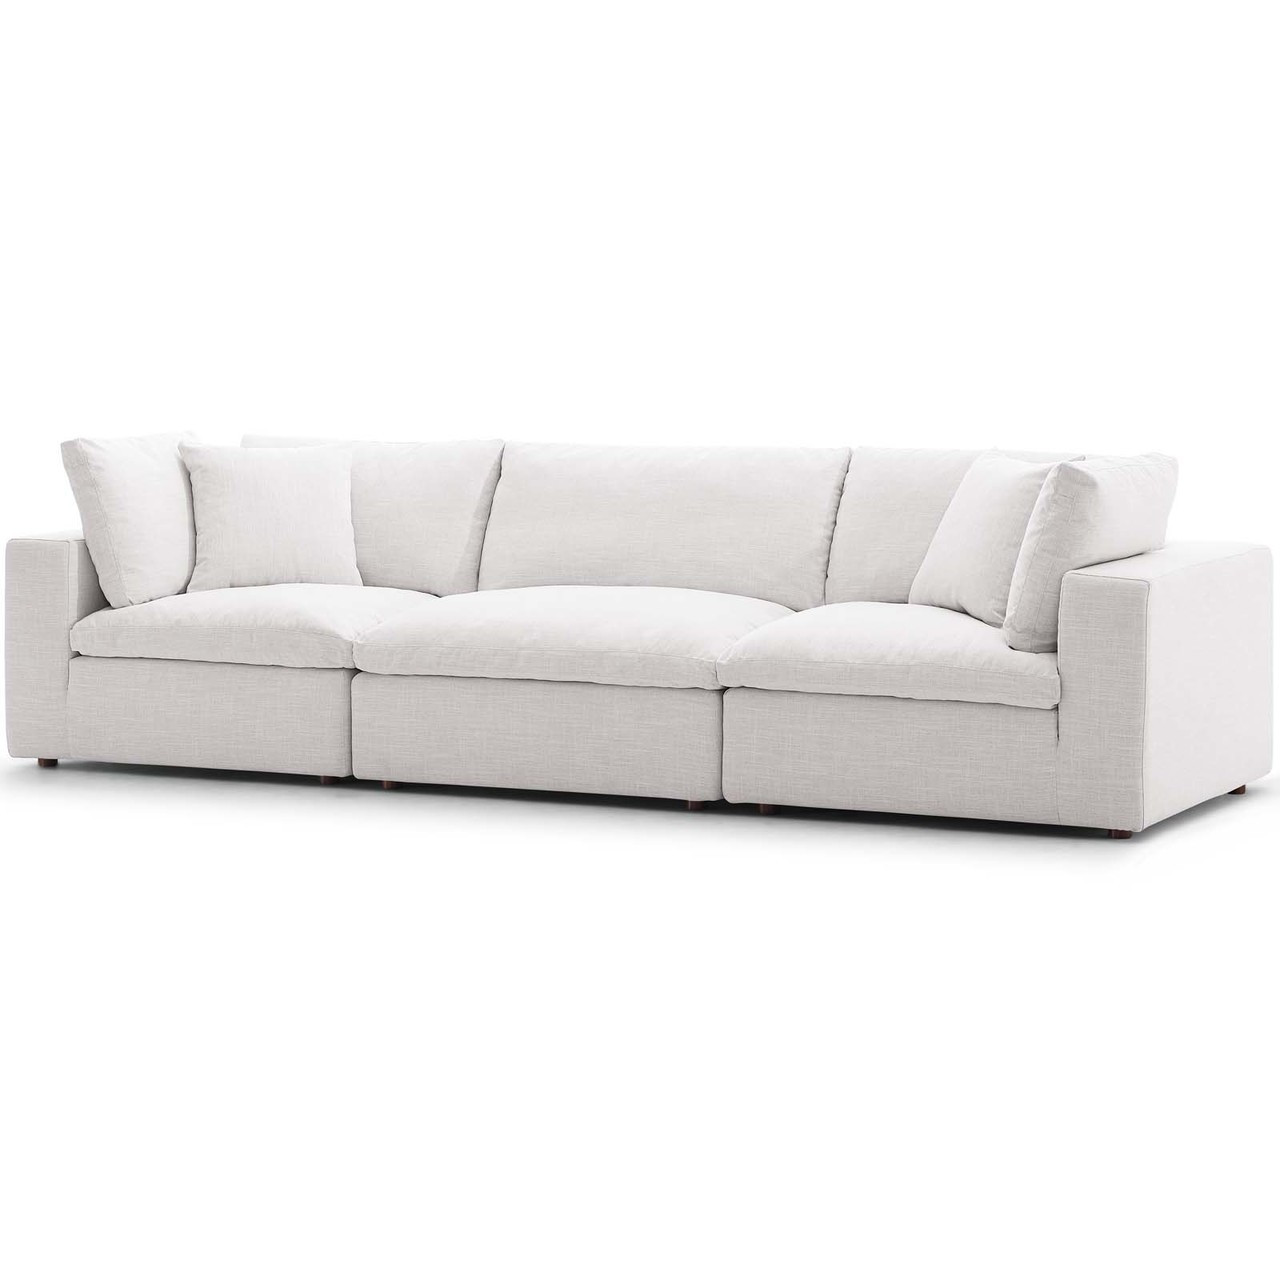 Commix Down Filled Overstuffed 3 Piece Sectional Sofa Set, Fabric, Beige  15722